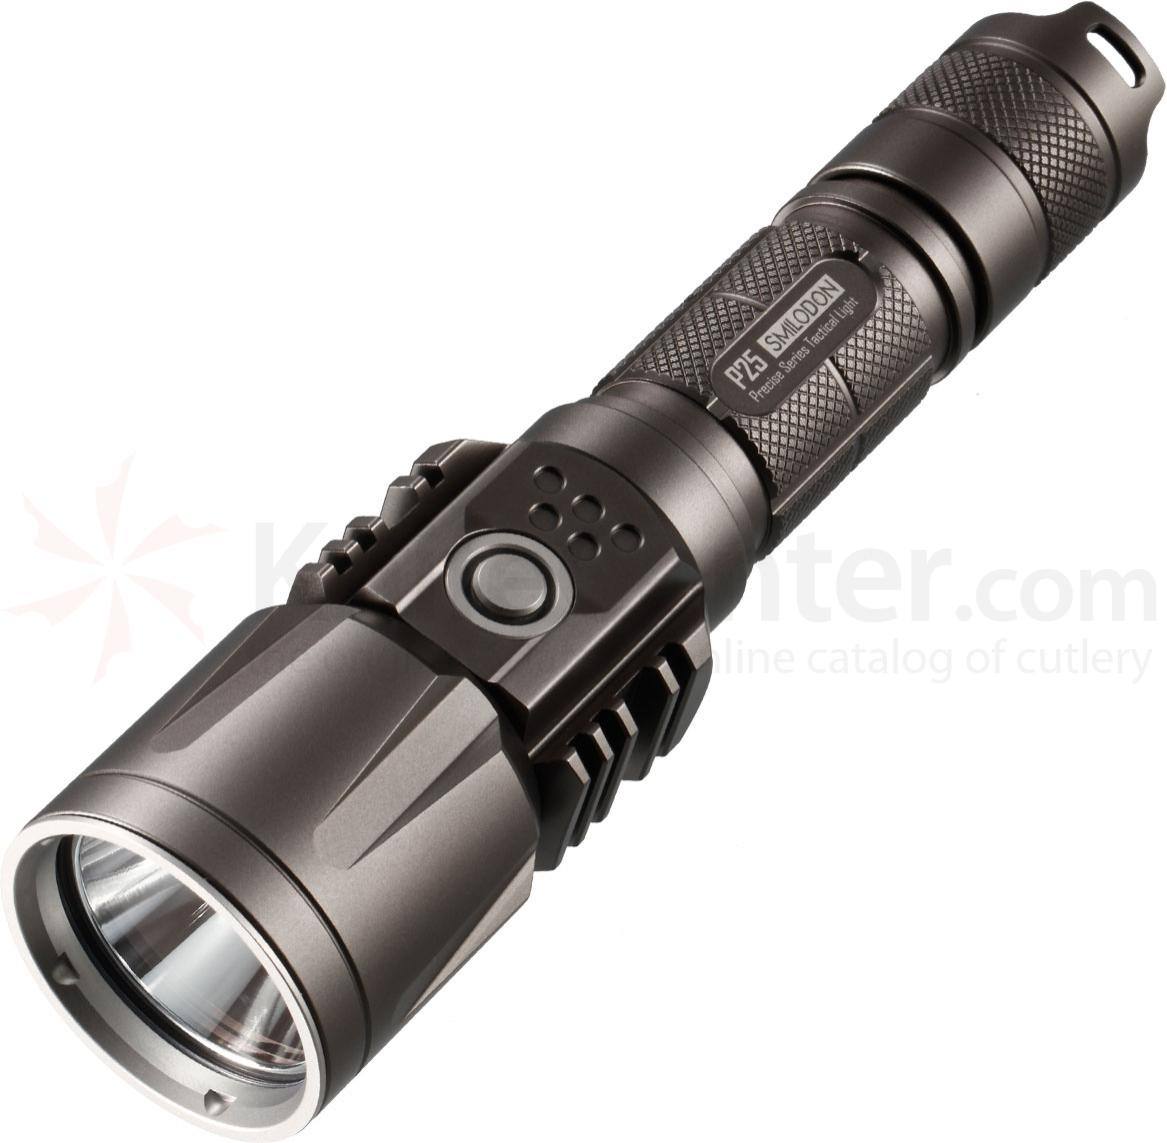 NITECORE P25GR Precise Smilodon Rechargeable 18650 LED Flashlight, Gray, 860 Max Lumens